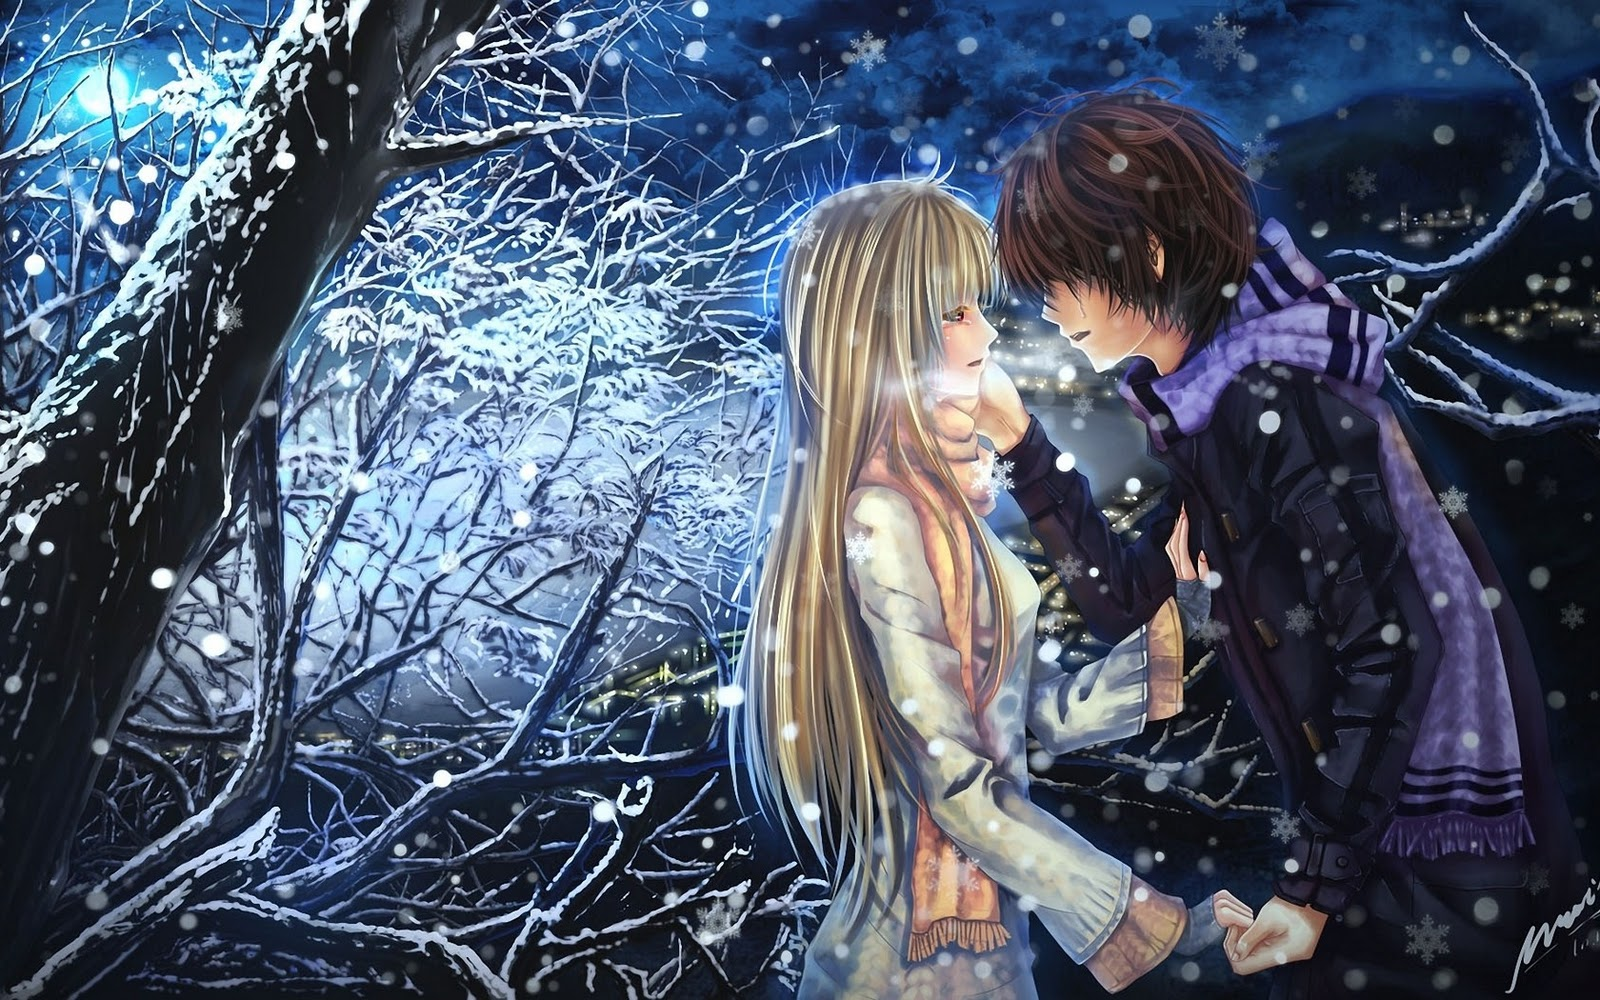 Love couple Animated Wallpaper Hd : A2Z Wallpapers: Anime couples In Love Wallpapers